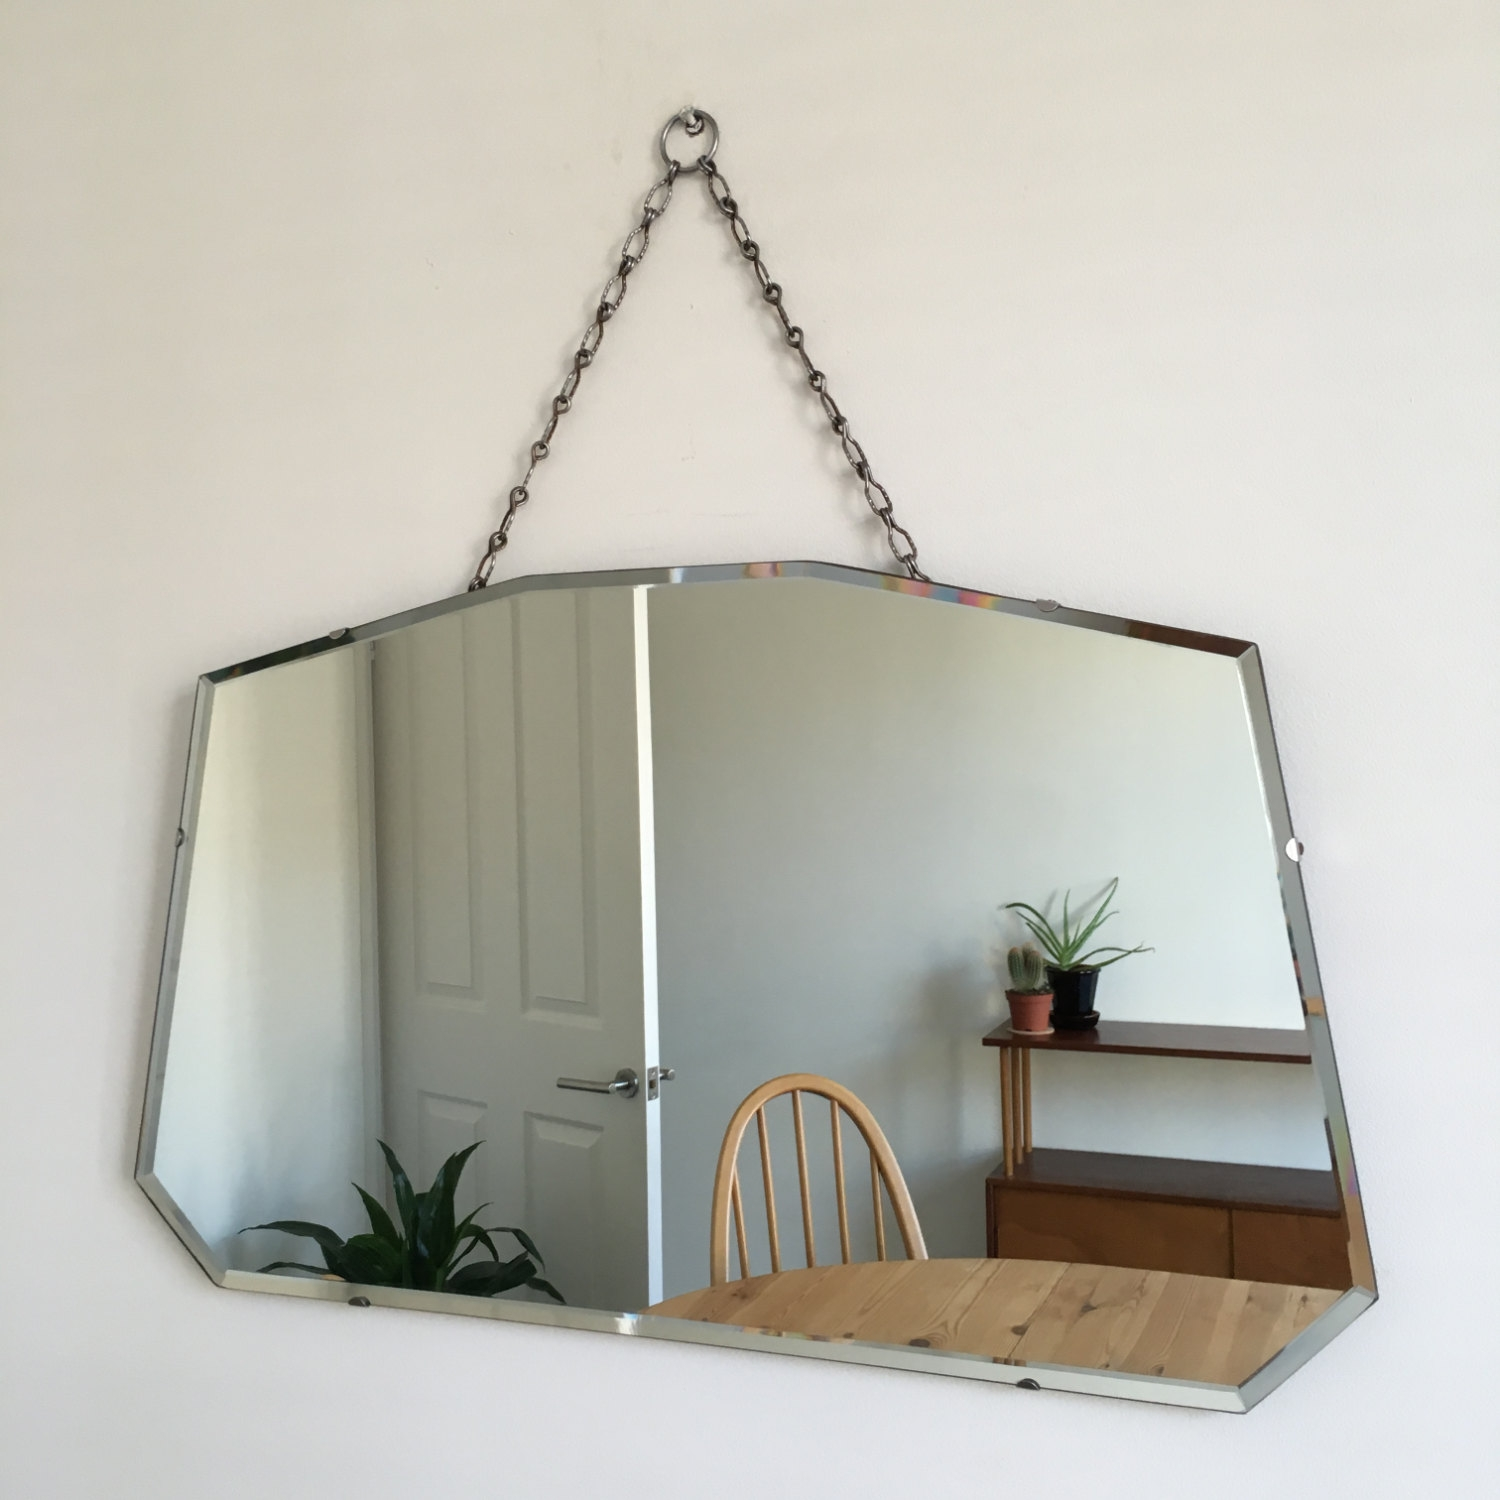 Vintage Bevelled Edge Wall Mirror On Chain Mid Century Art Deco In Vintage Bevelled Edge Mirror (Image 9 of 15)